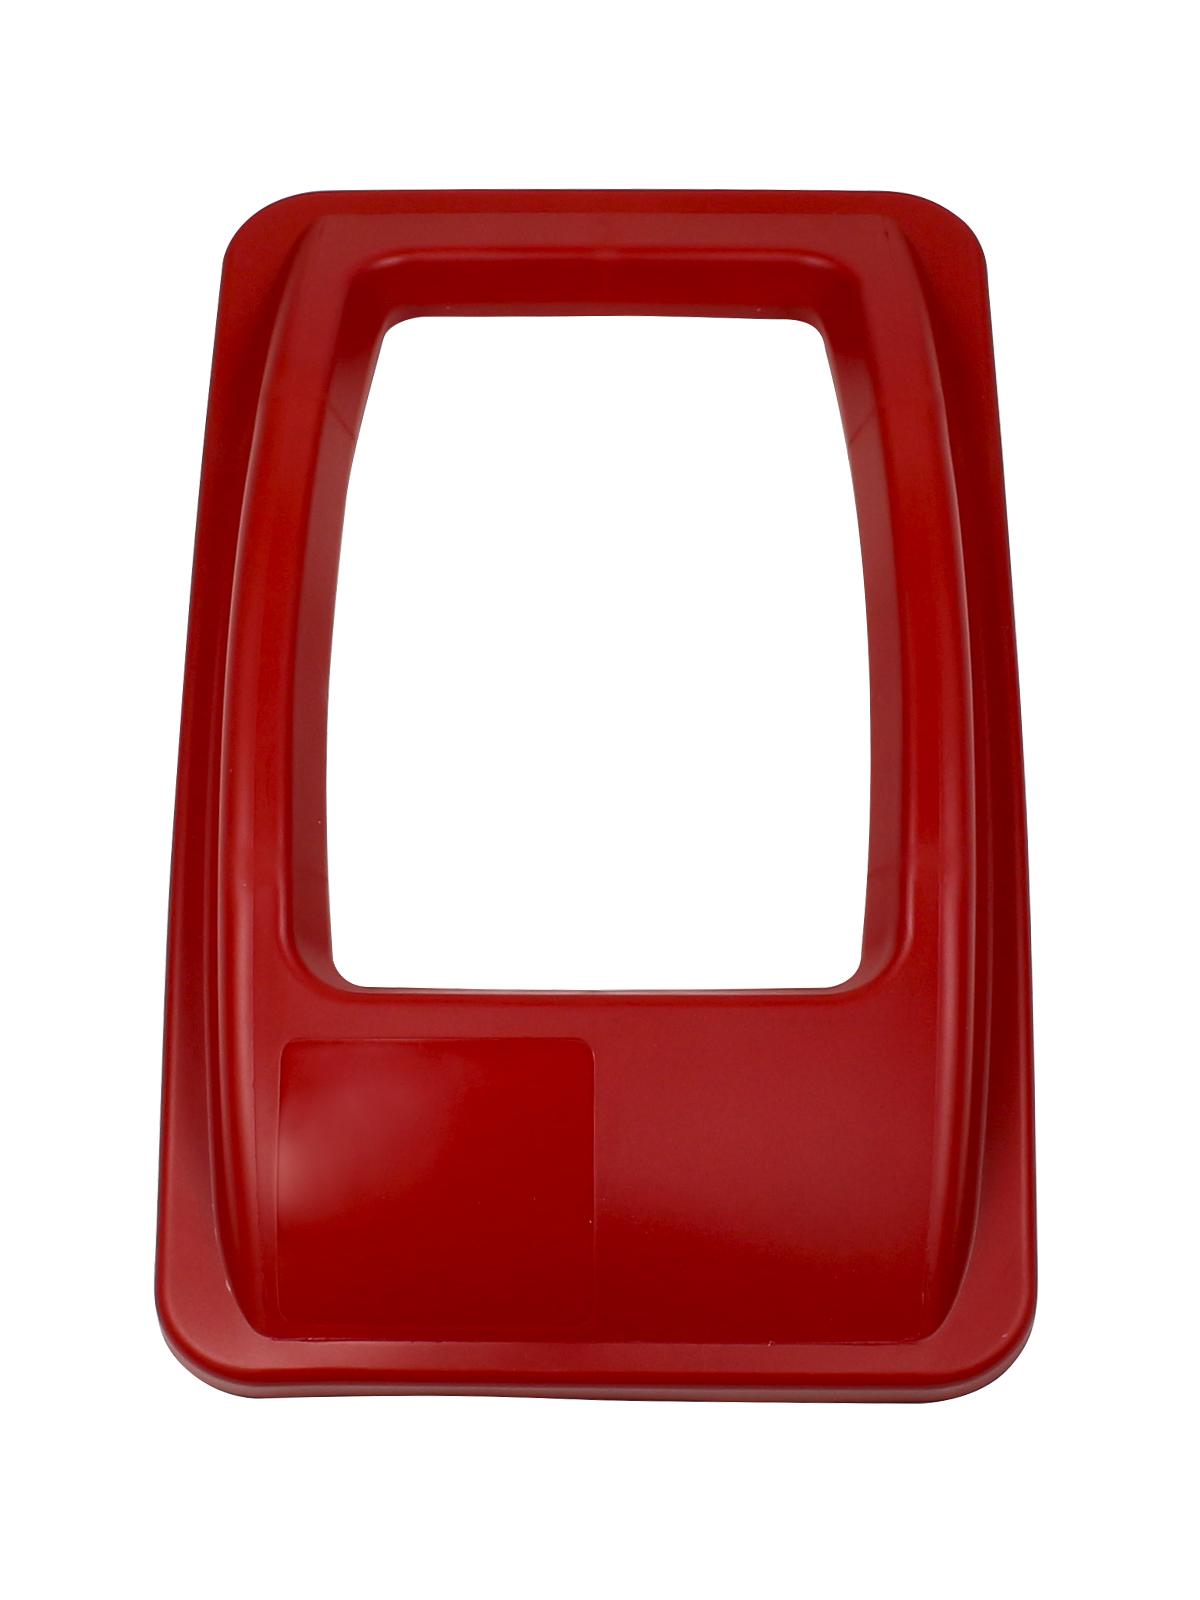 WASTE WATCHER - Single - Lid - Full - Red